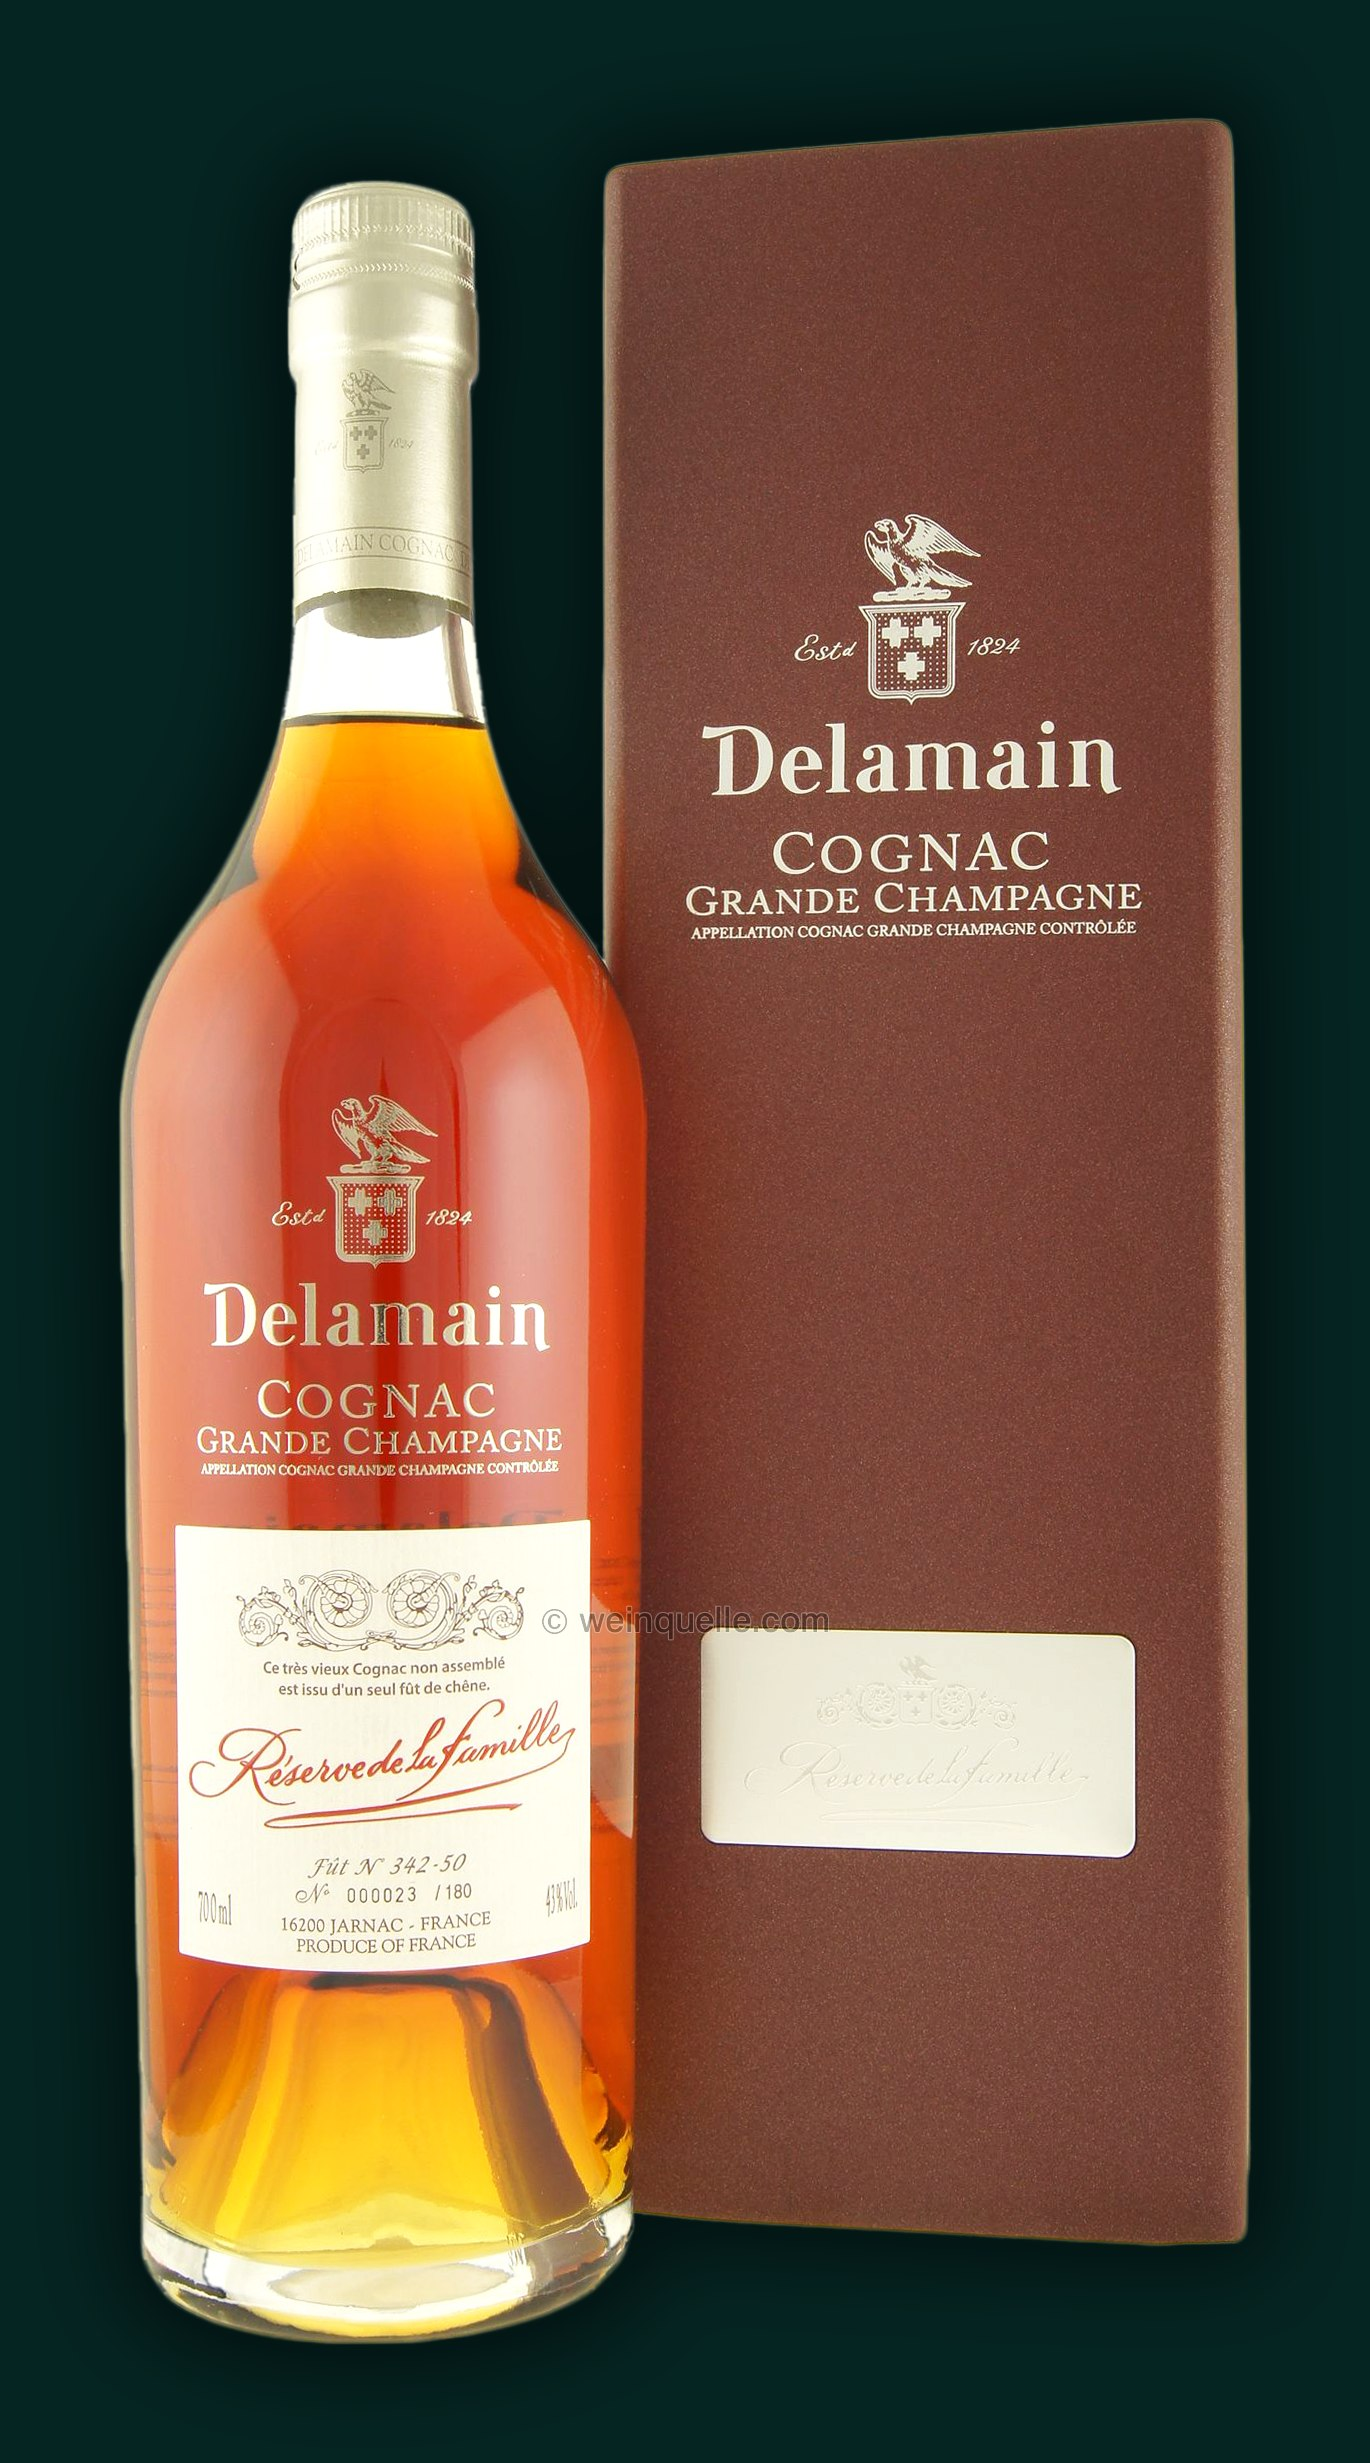 Delamain Cognac Marks Its Resurgence In Australia Delamain Cognac Marks Its Resurgence In Australia new picture